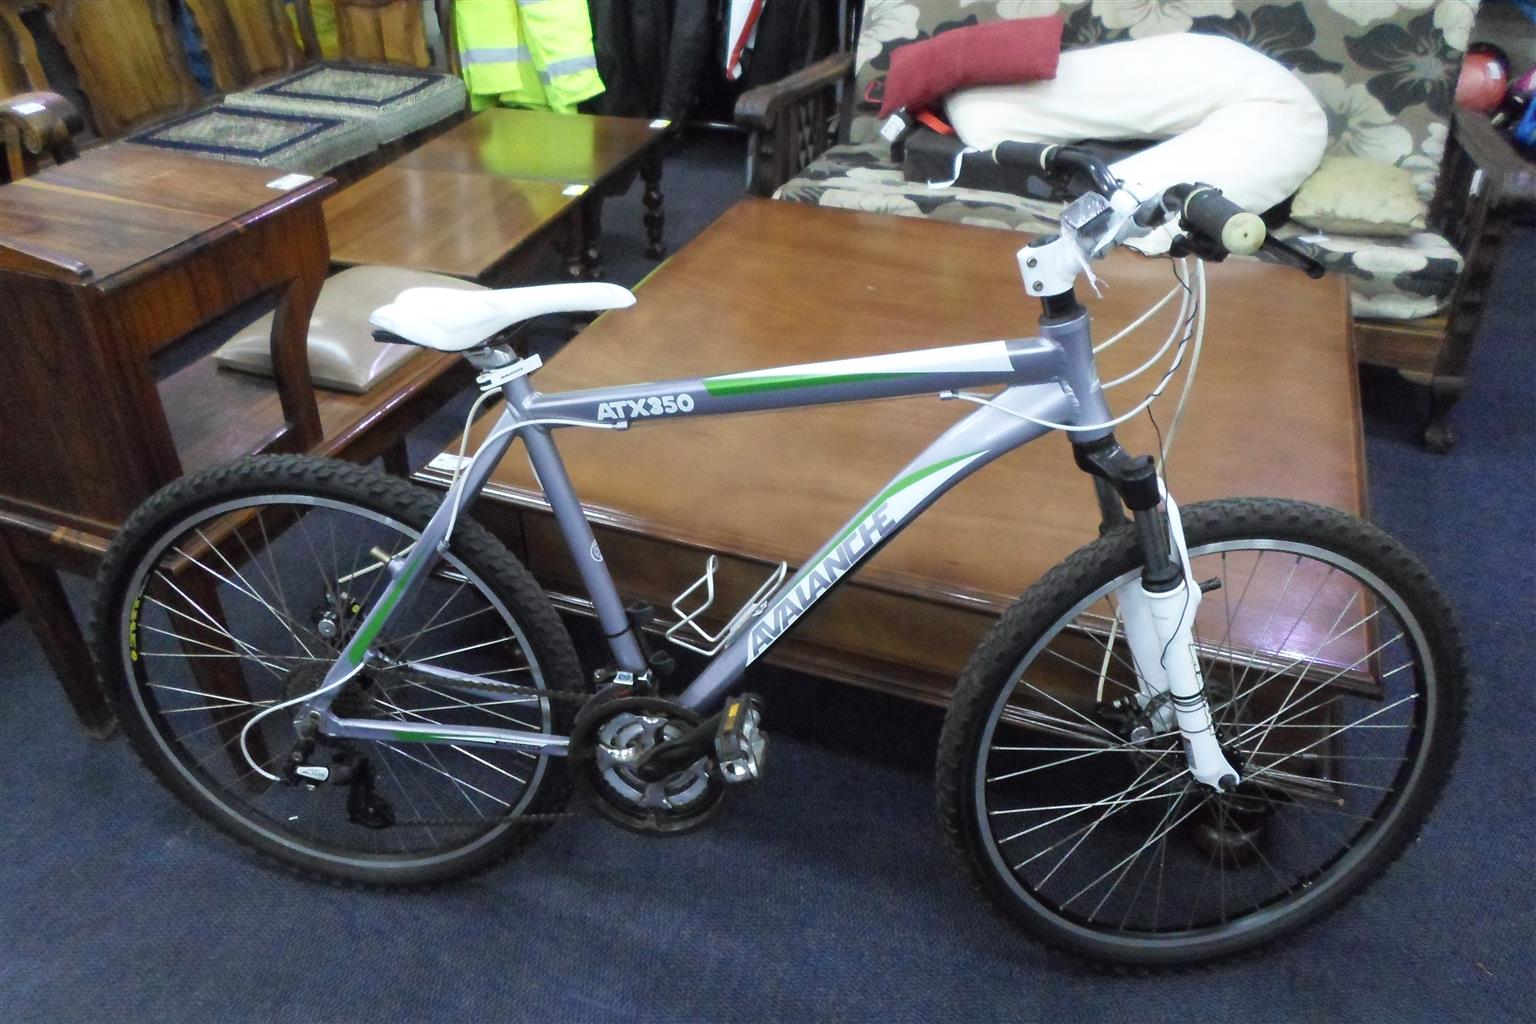 Avalanche ATX350 Bicycle